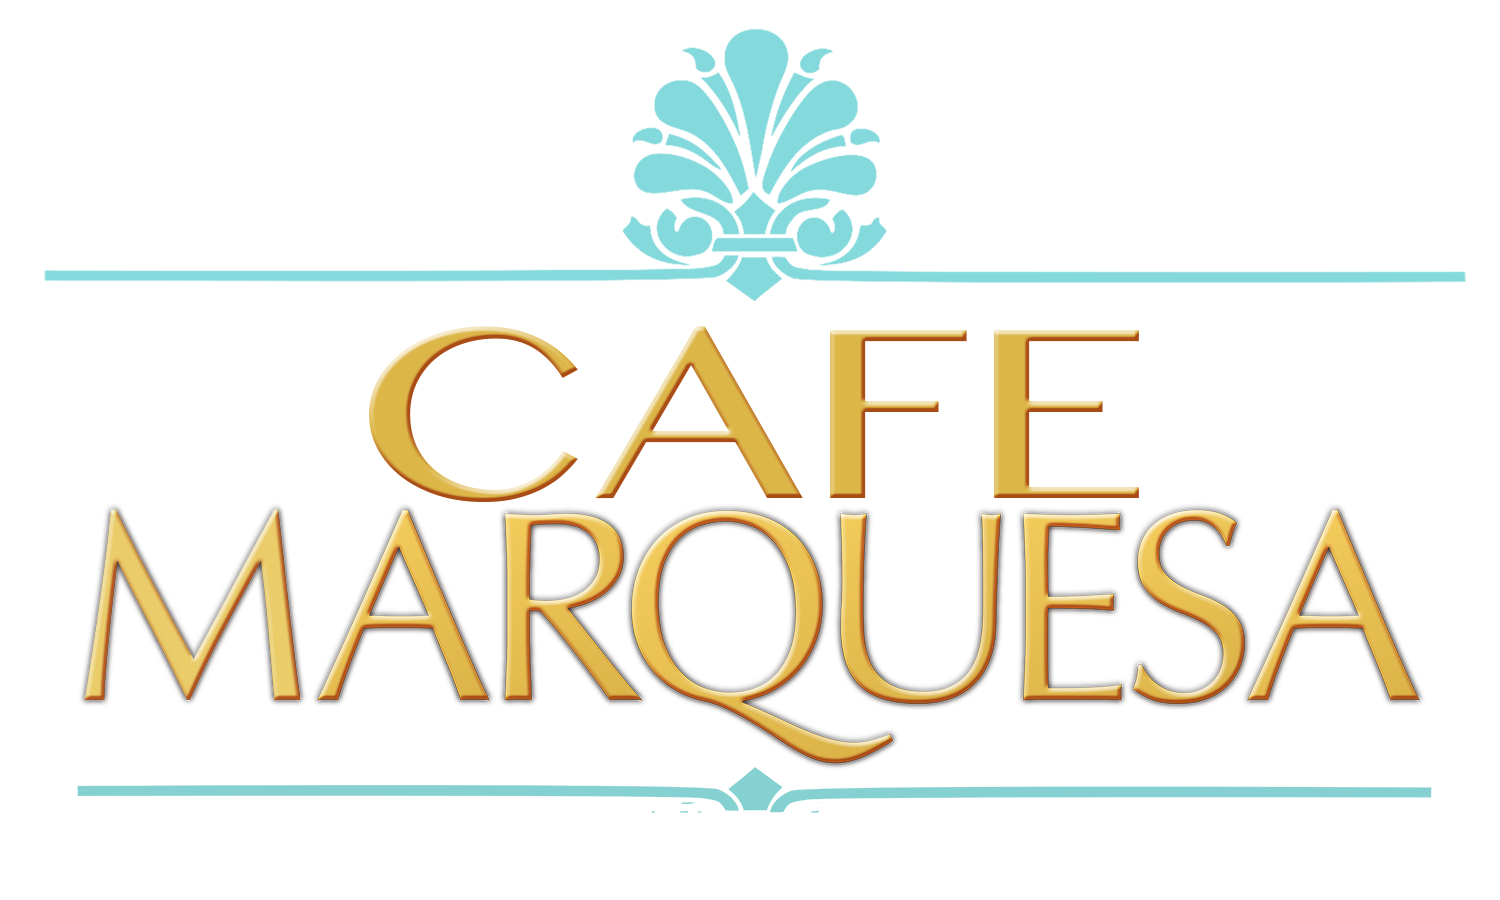 Cafe Marquesa Restaurant Key West logo